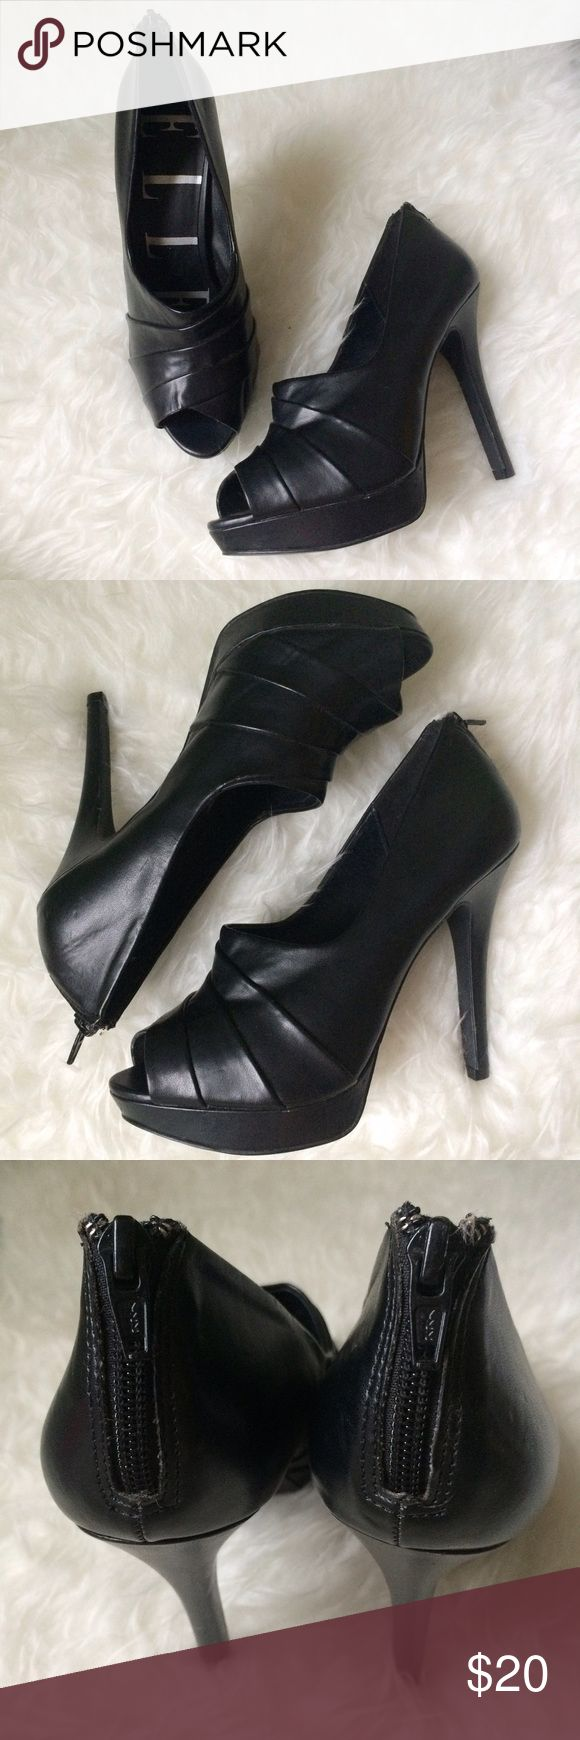 ✨NEW Listing✨Elle Genevie peep toe platform heels Elle Genevie black peep toe platform heels with zippered backs. Pretty great shape, has a long scratch of the back of left heel, seen in last photo. Another pair of platforms that haven't left the house. Size 8.5. Manmade materials. Not interested in trades. **heel & platform measurements coming soon** Elle Shoes Heels